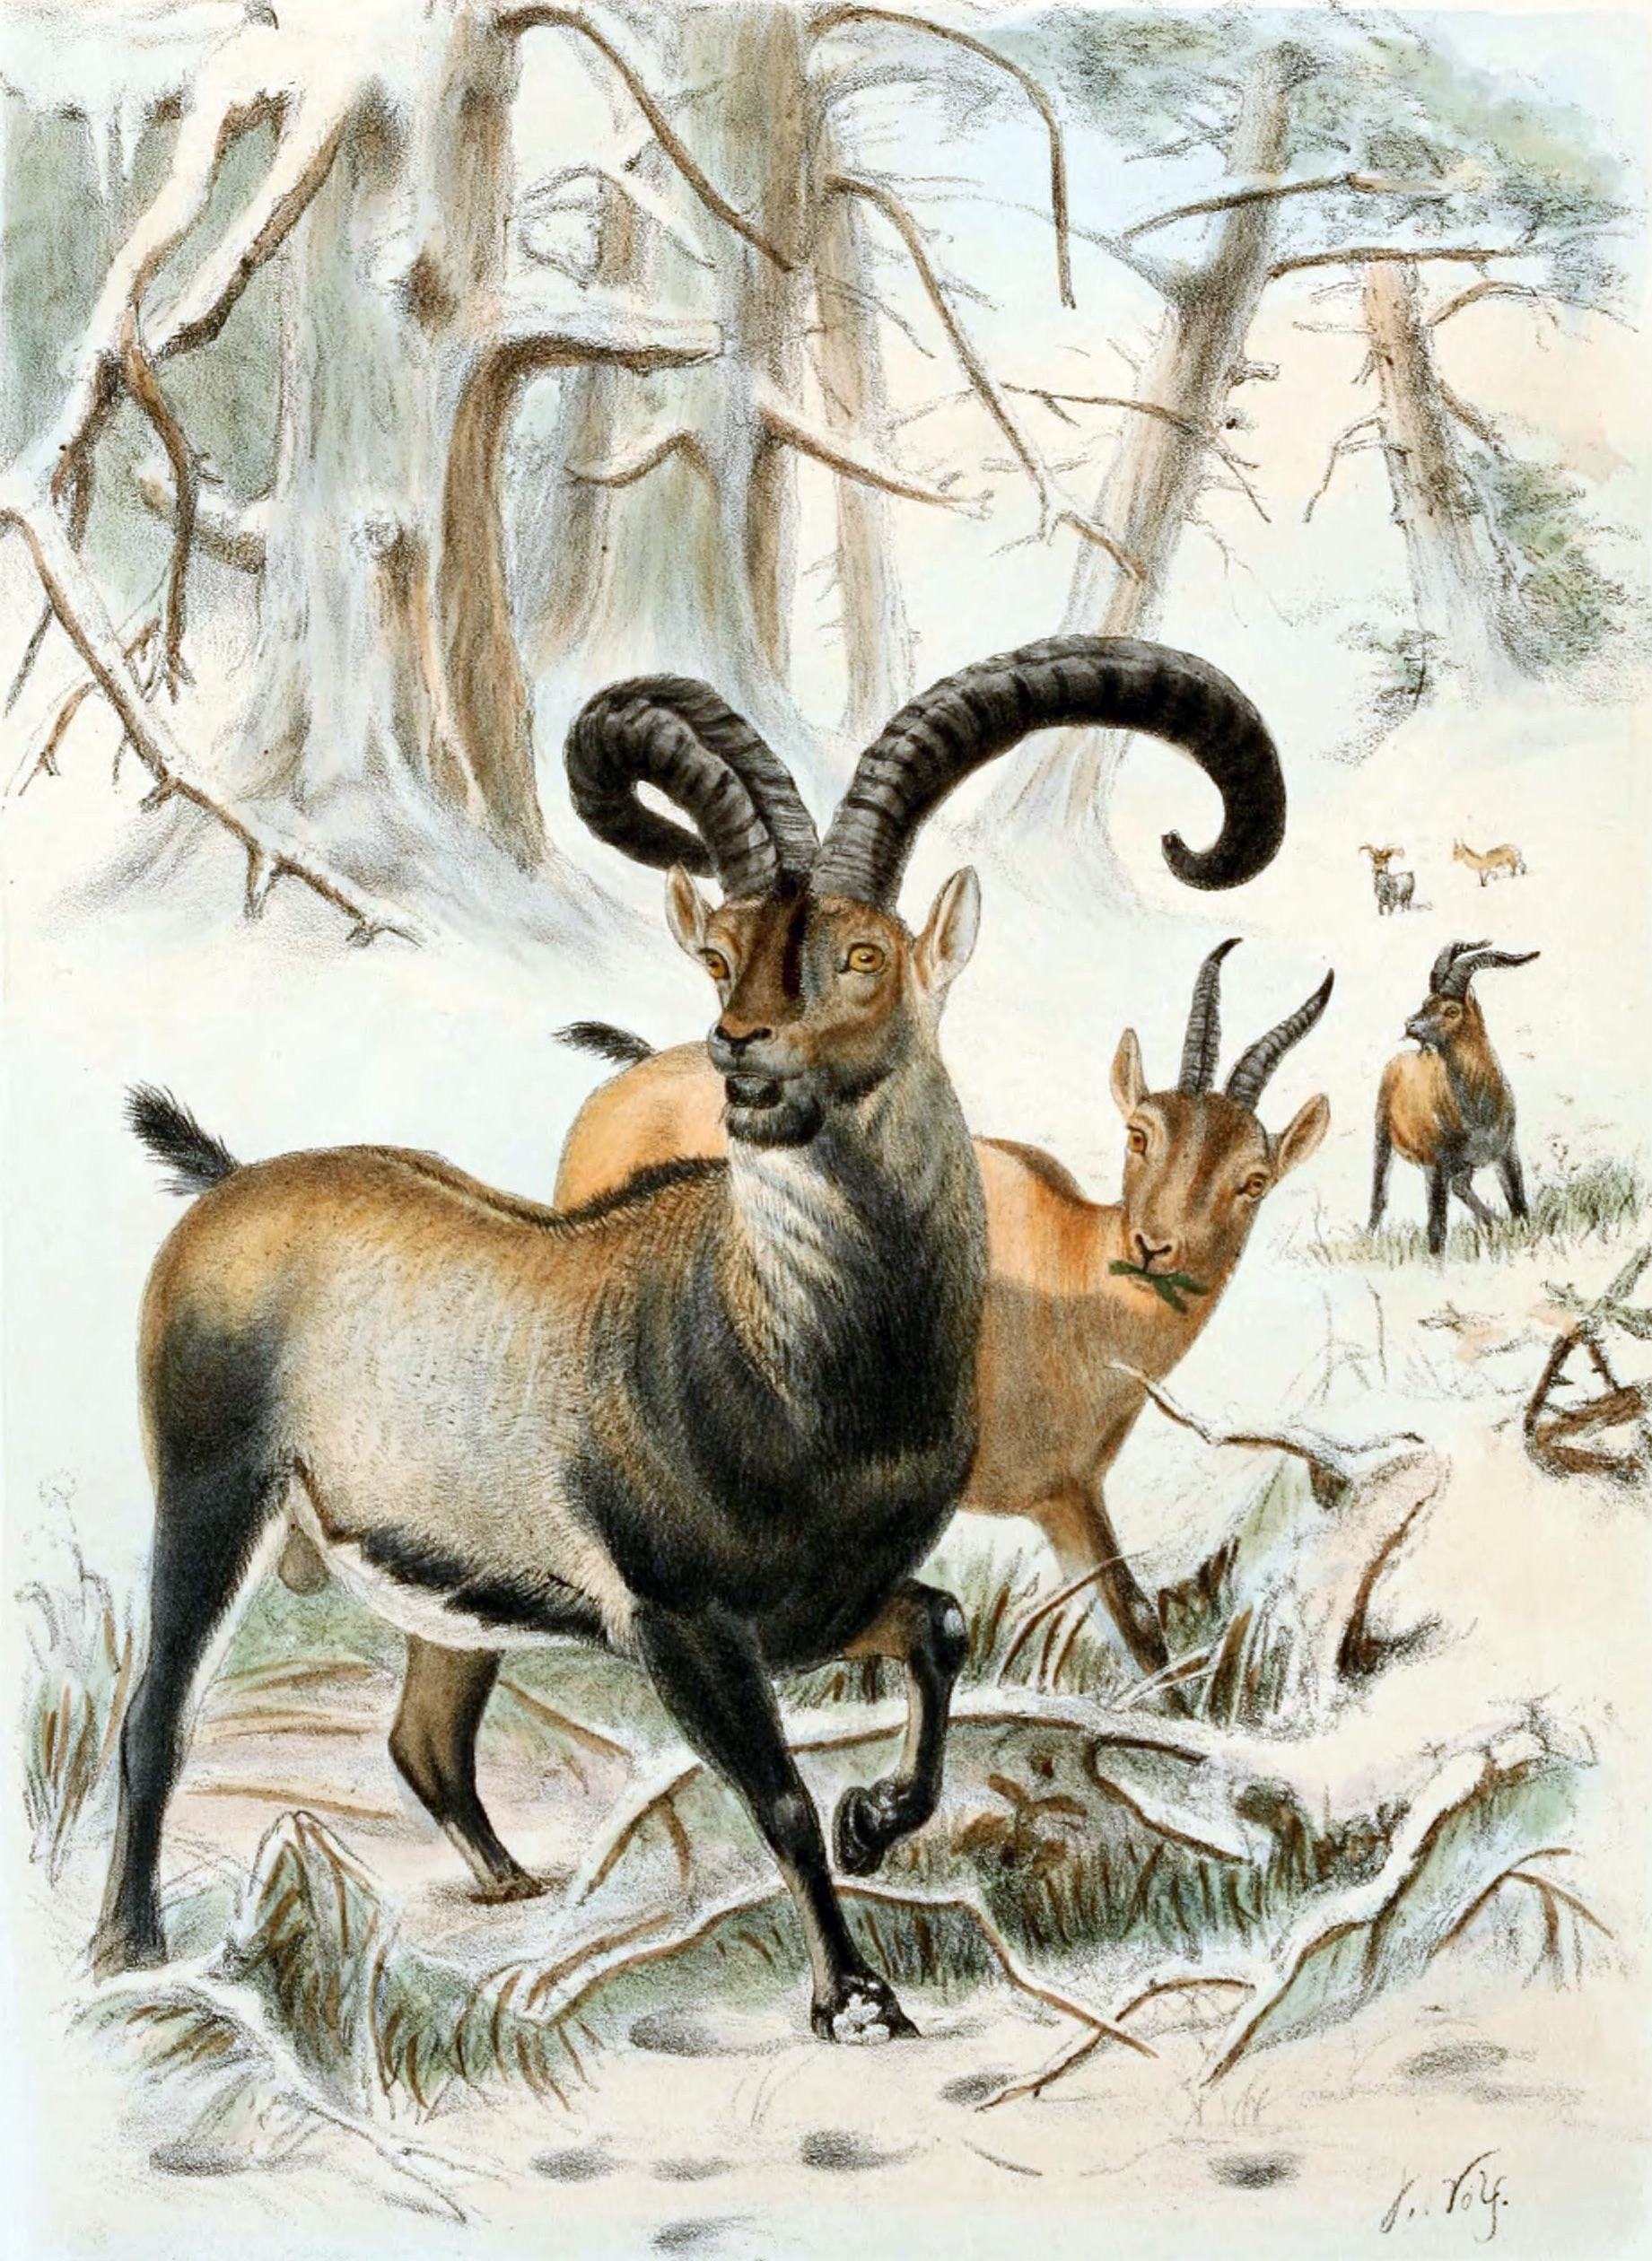 The Pyrenean ibex ( Capra pyrenaica pyrenaica ), illustrated here in 1898, remains extinct despite multiple cloning attempts.   Joseph Wolf/Wikimedia Commons  (public domain)